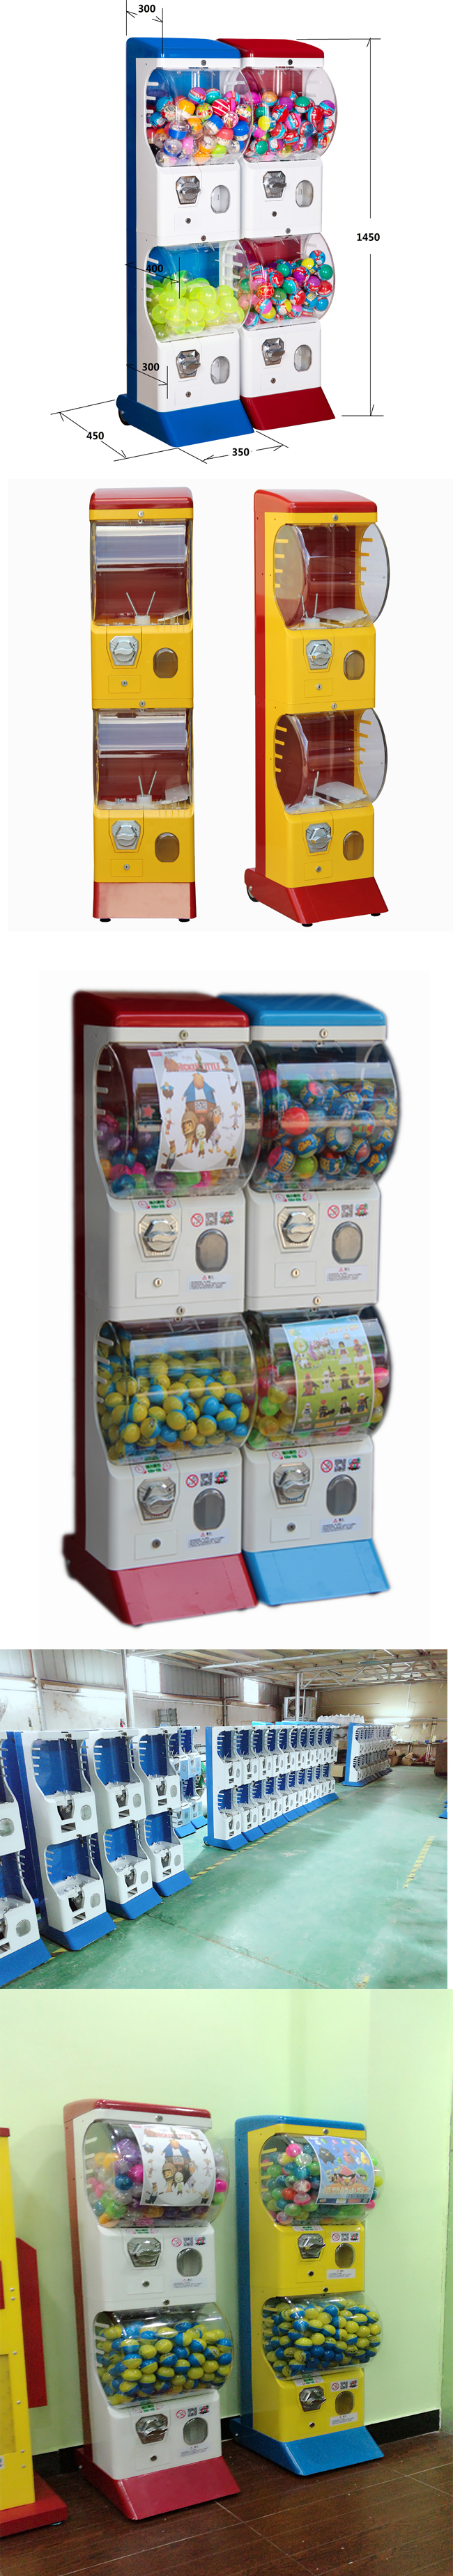 "2"" - 3"" Tomy Gacha Toy Capsule Machine Multifunctional With CE Certification"